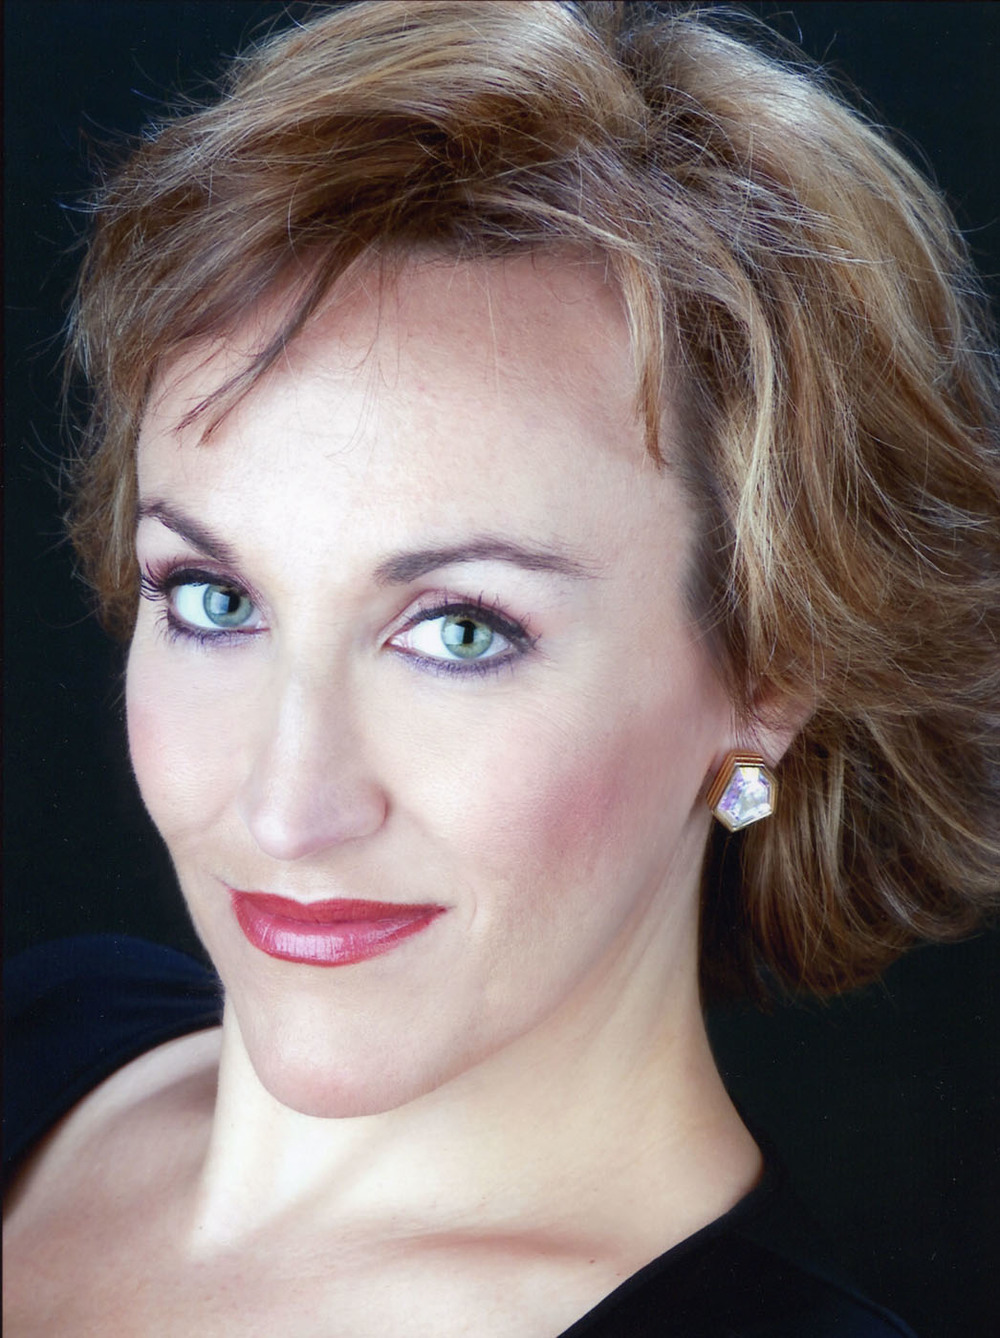 Renowned soprano Emily Pulley sang the lead role of Peregrina